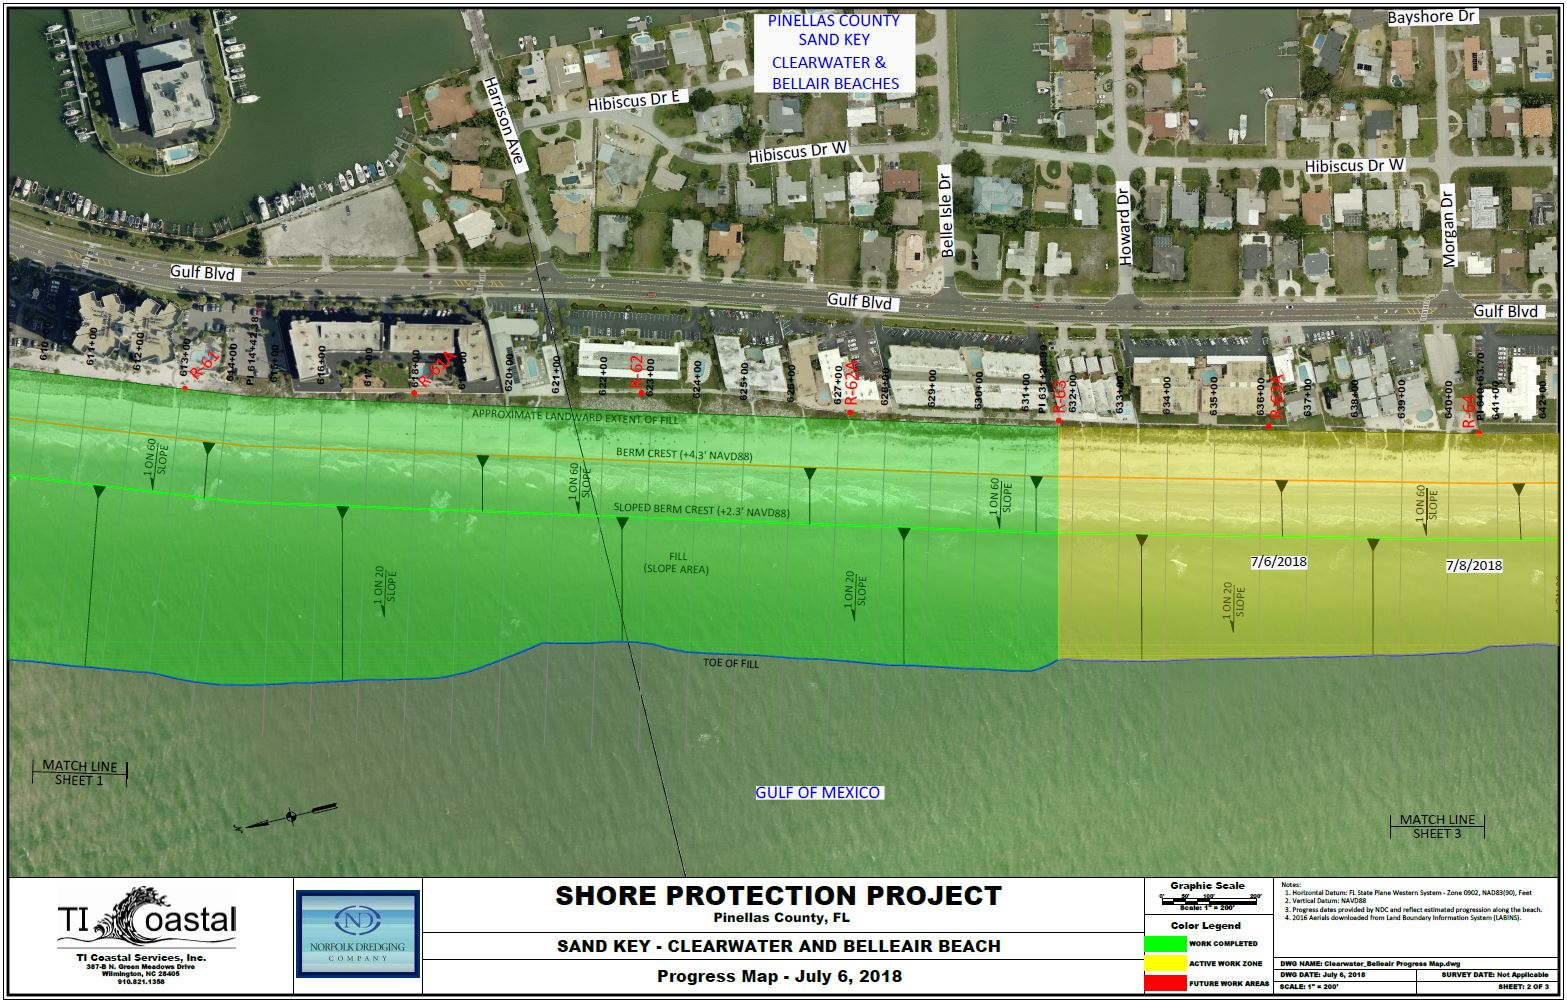 Pinellas County Shore Protection Progress Map July 6 2018 Section 2